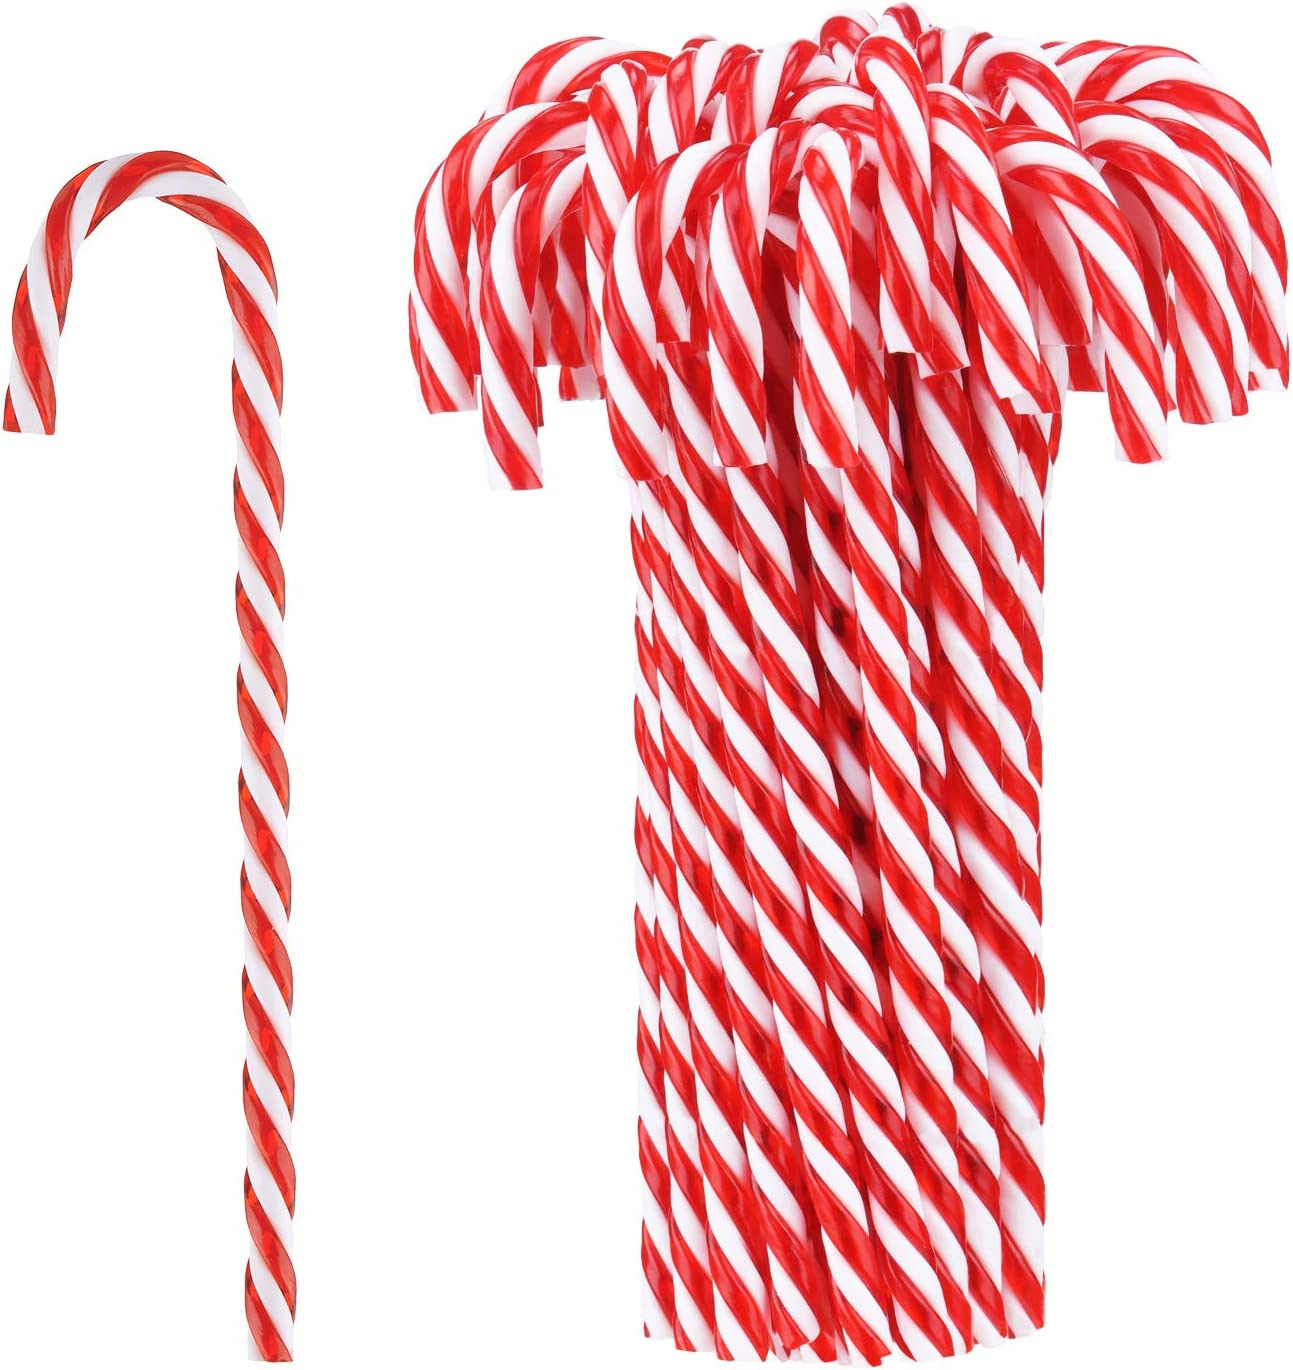 50 Pieces Christmas Plastic Candy Cane Christmas Tree Hanging Ornaments for Holiday Party Decoration Favors (Red and White)